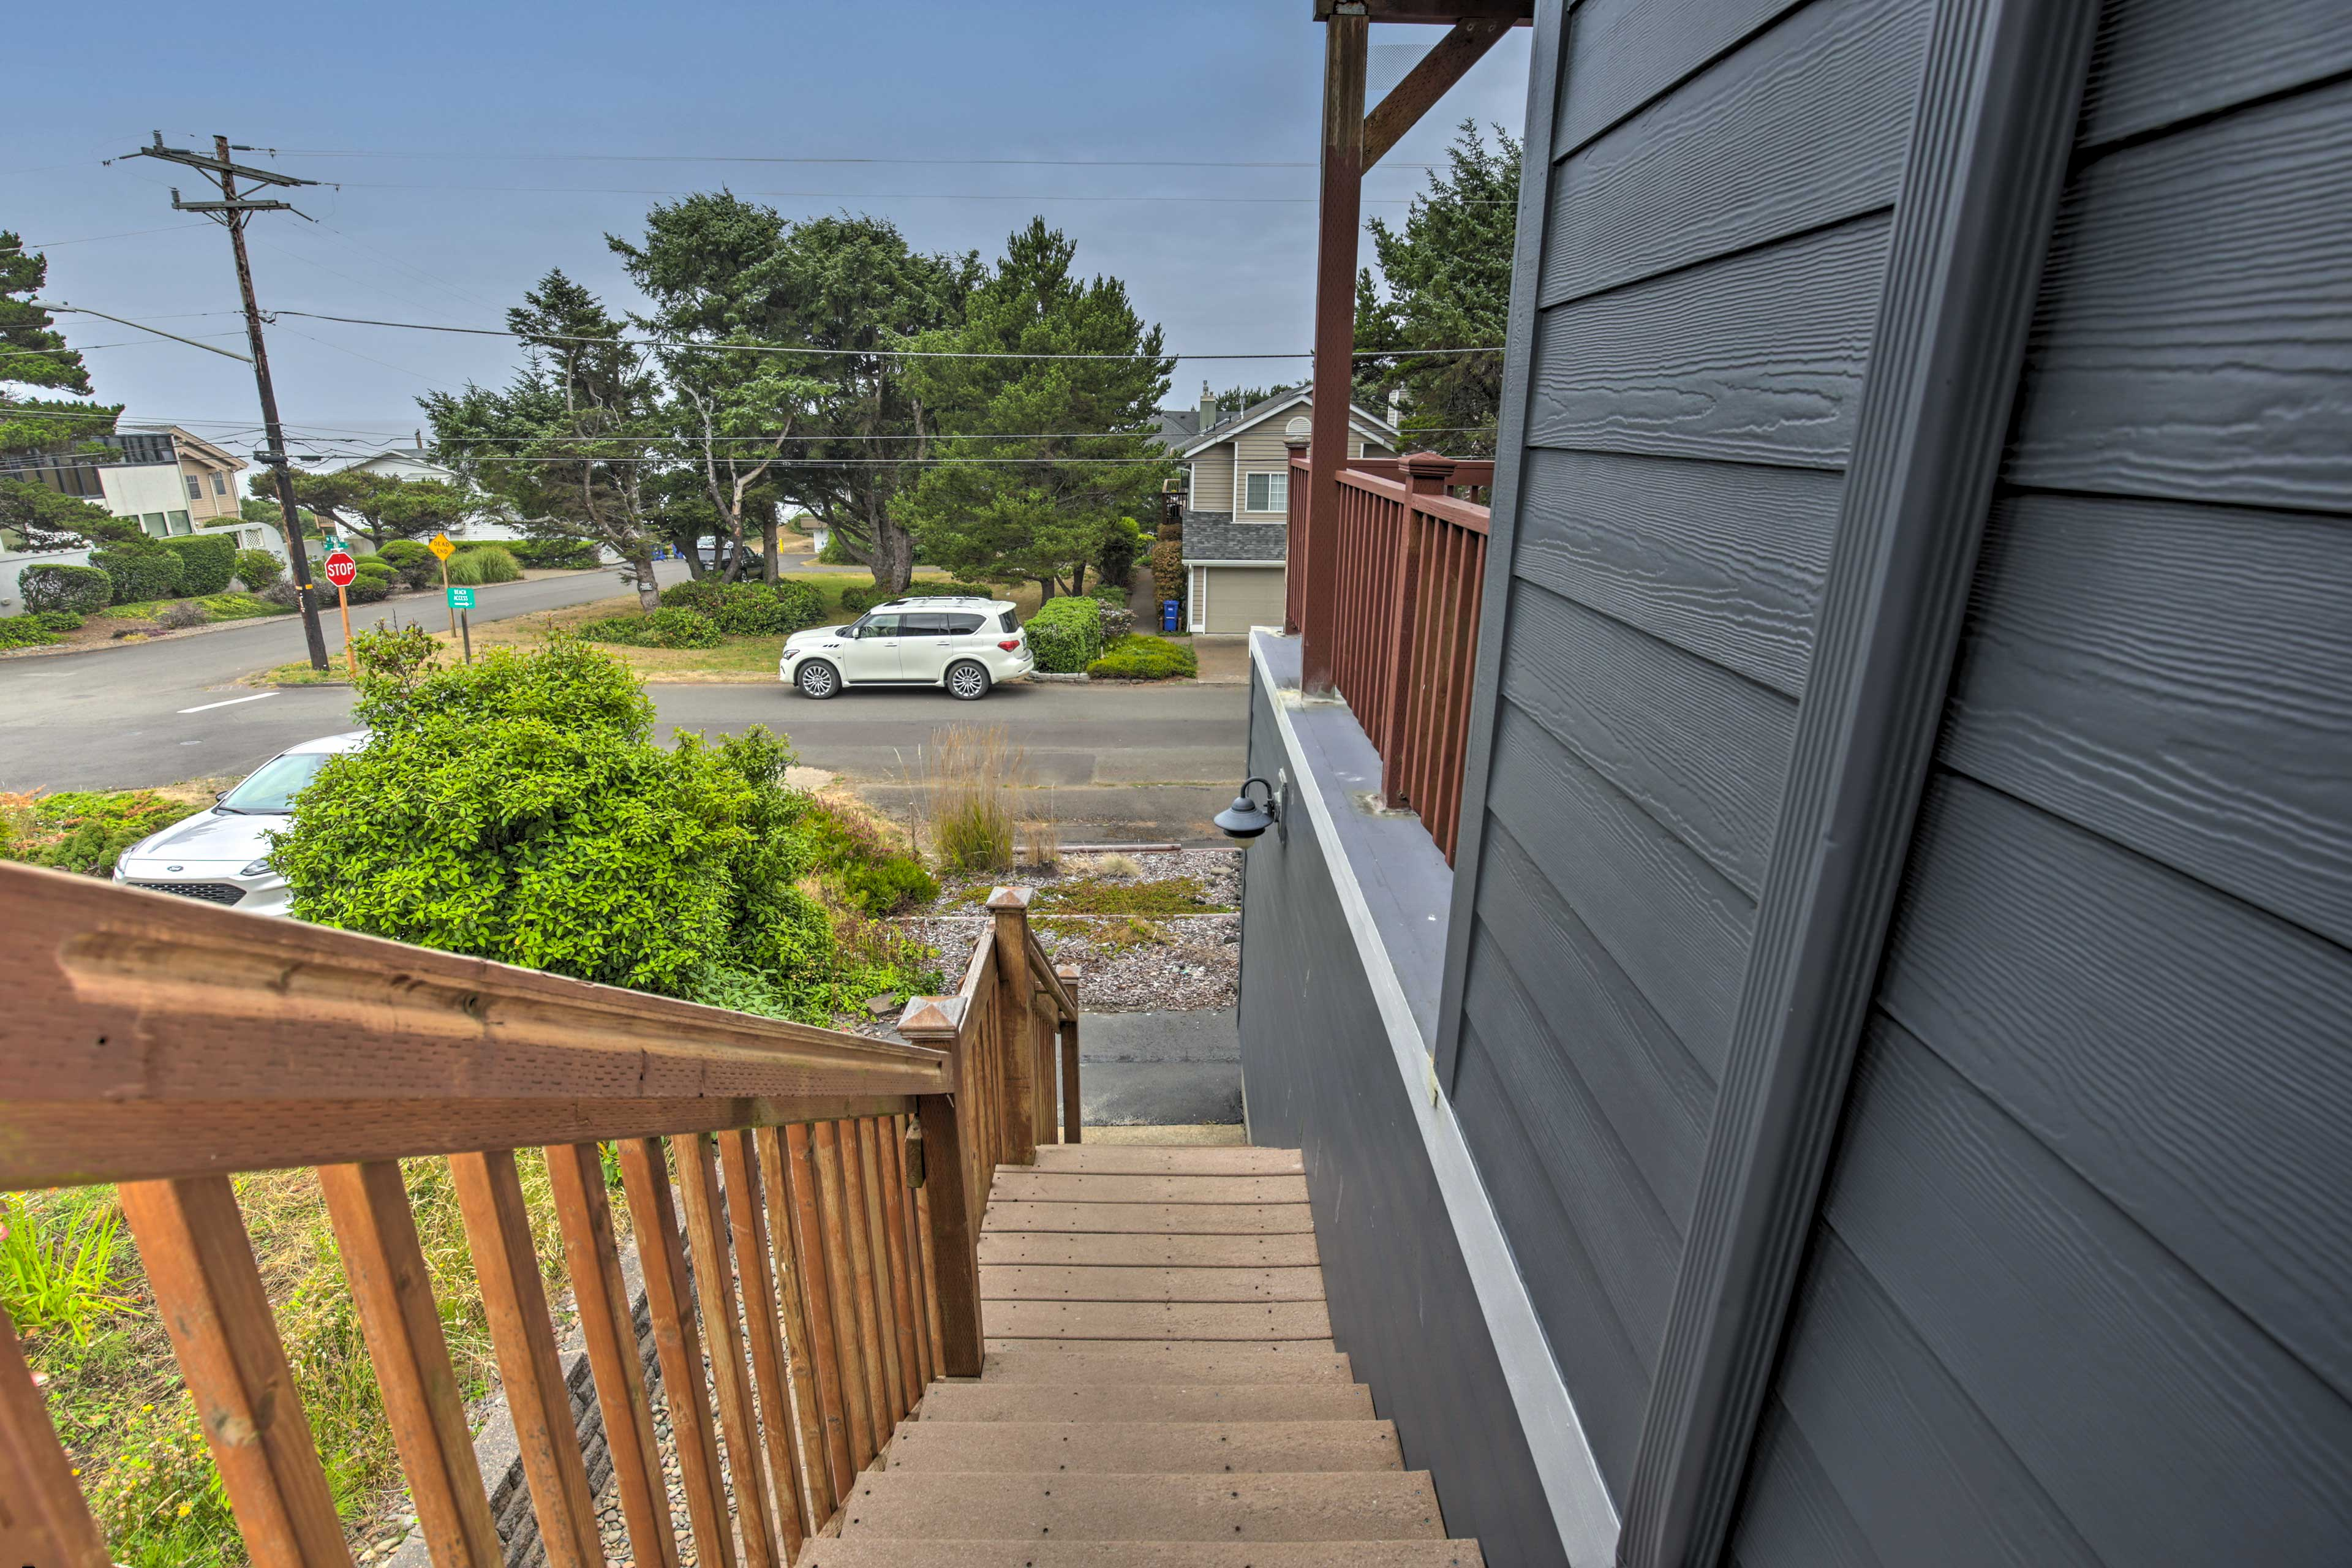 Make your way up the stairs to your home-away-from-home.